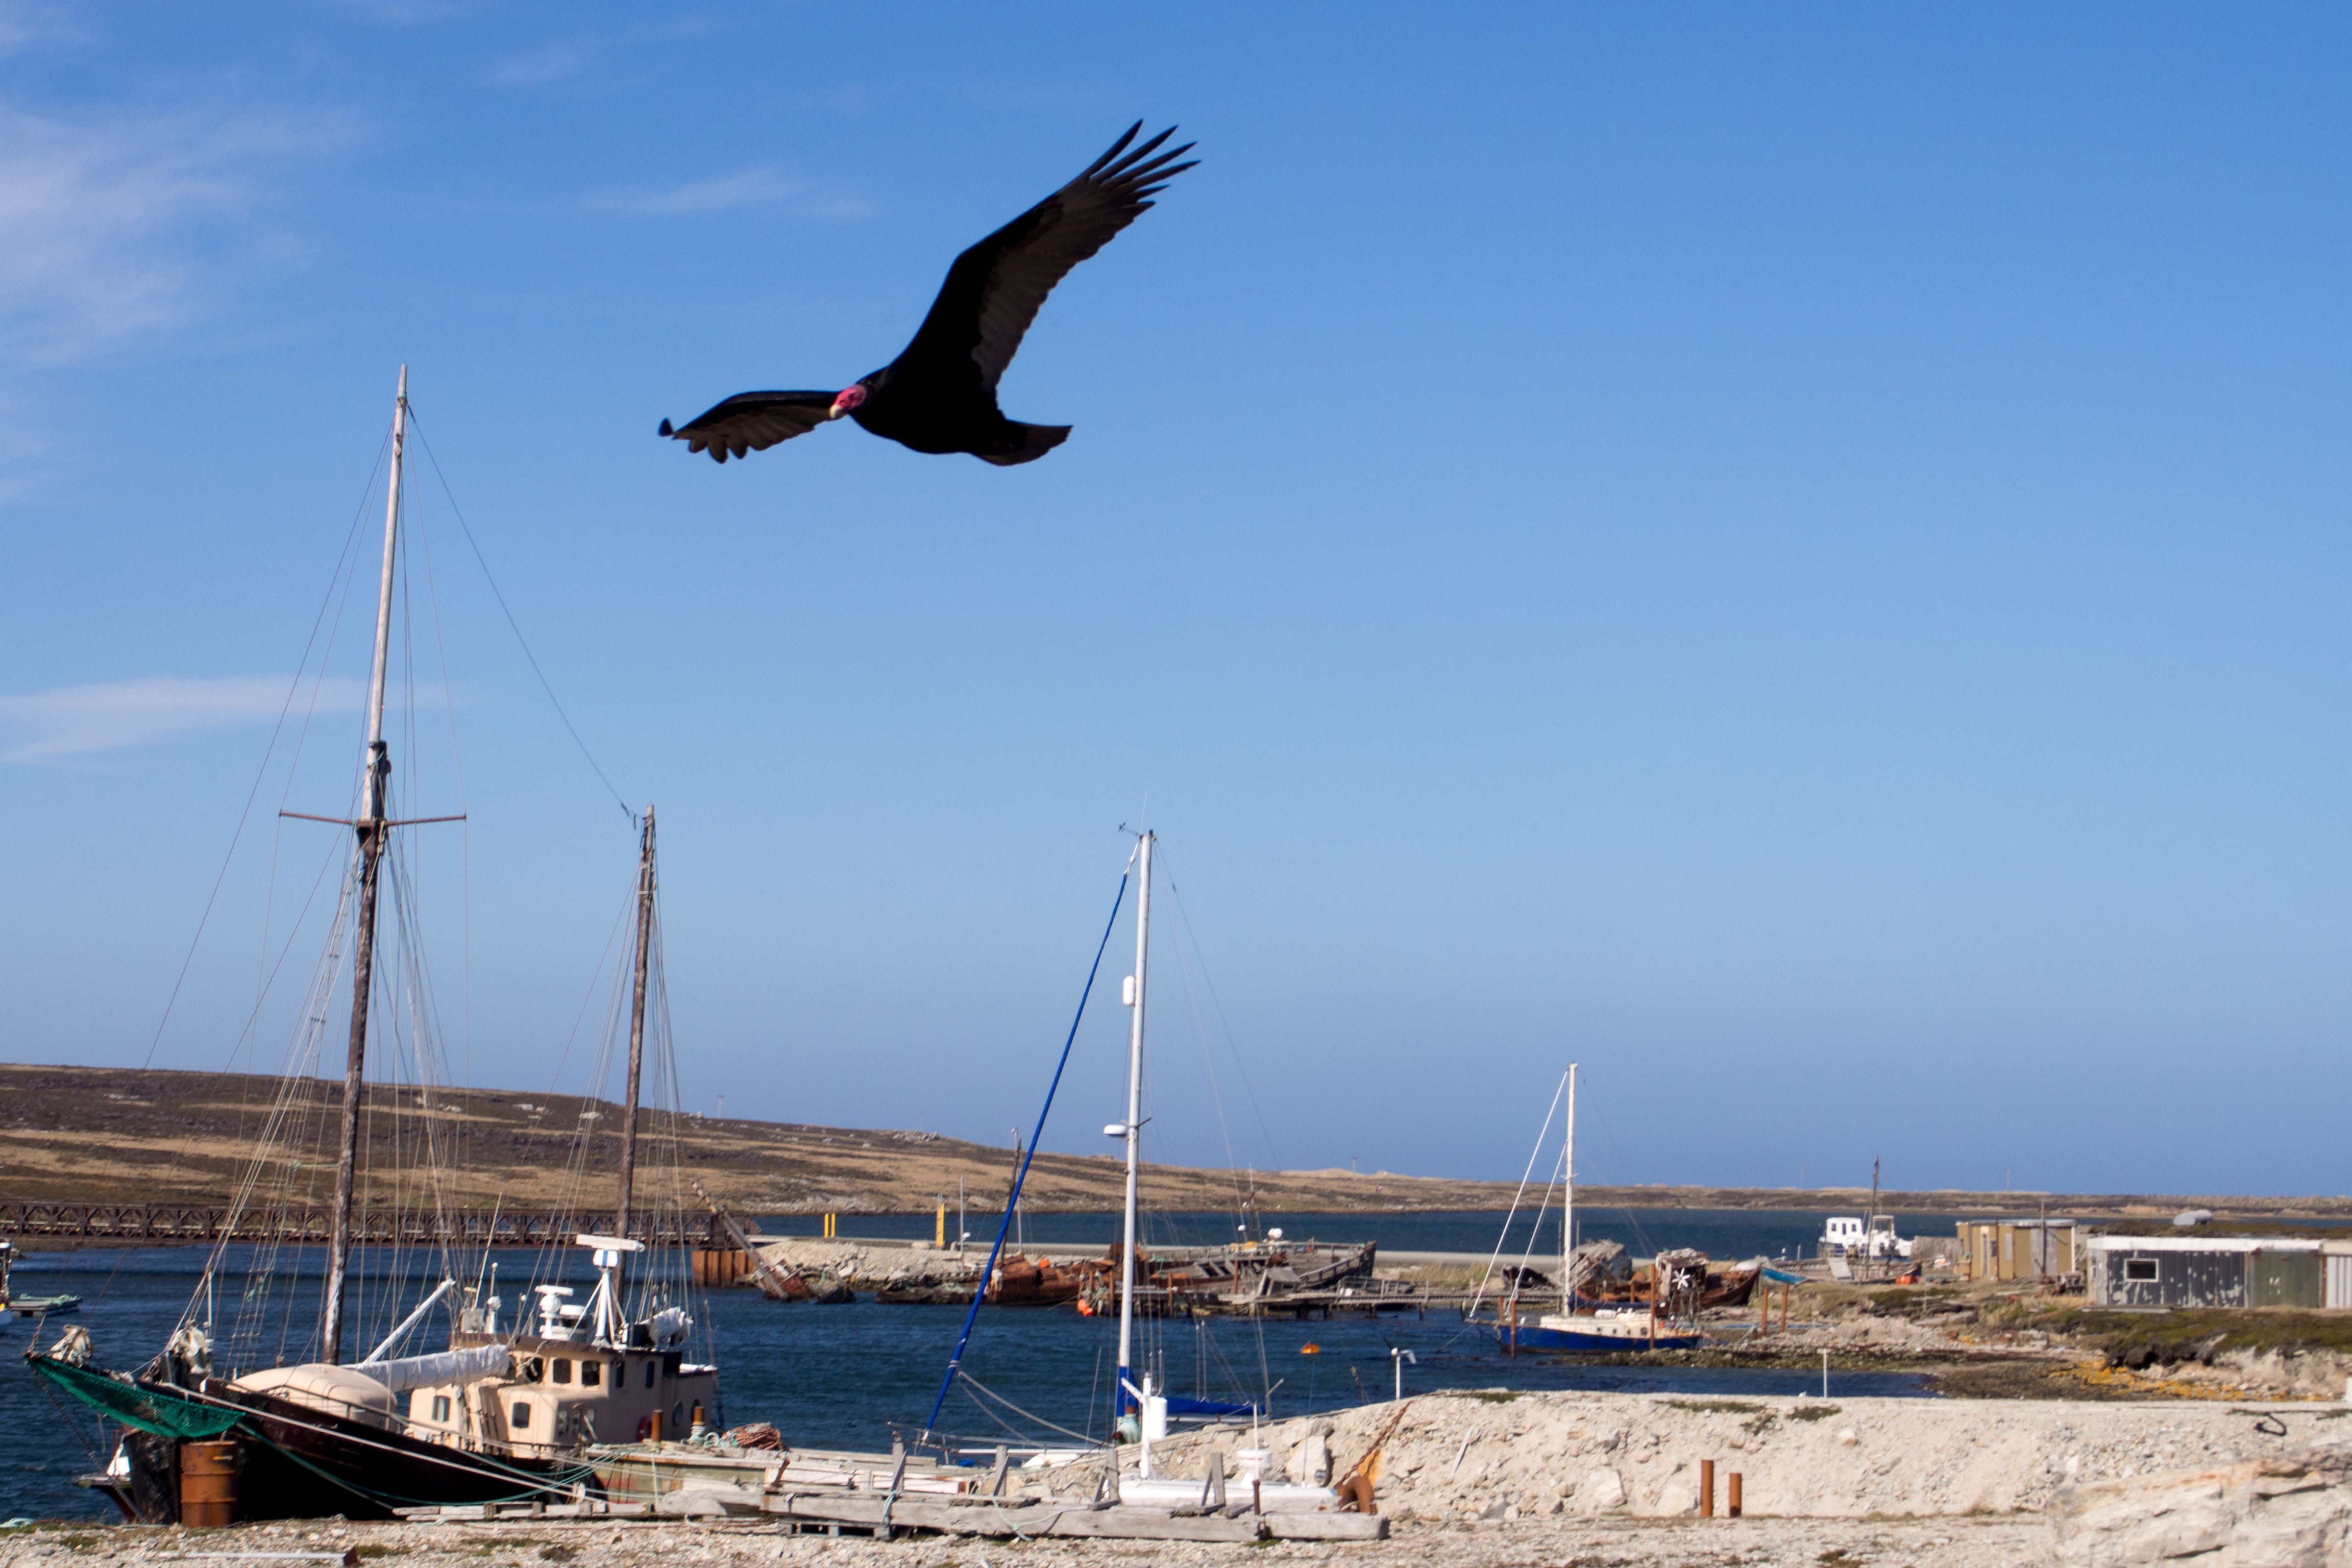 turkey vulture flying over harbour, Bird, Boats, Flying, Harbor, HQ Photo